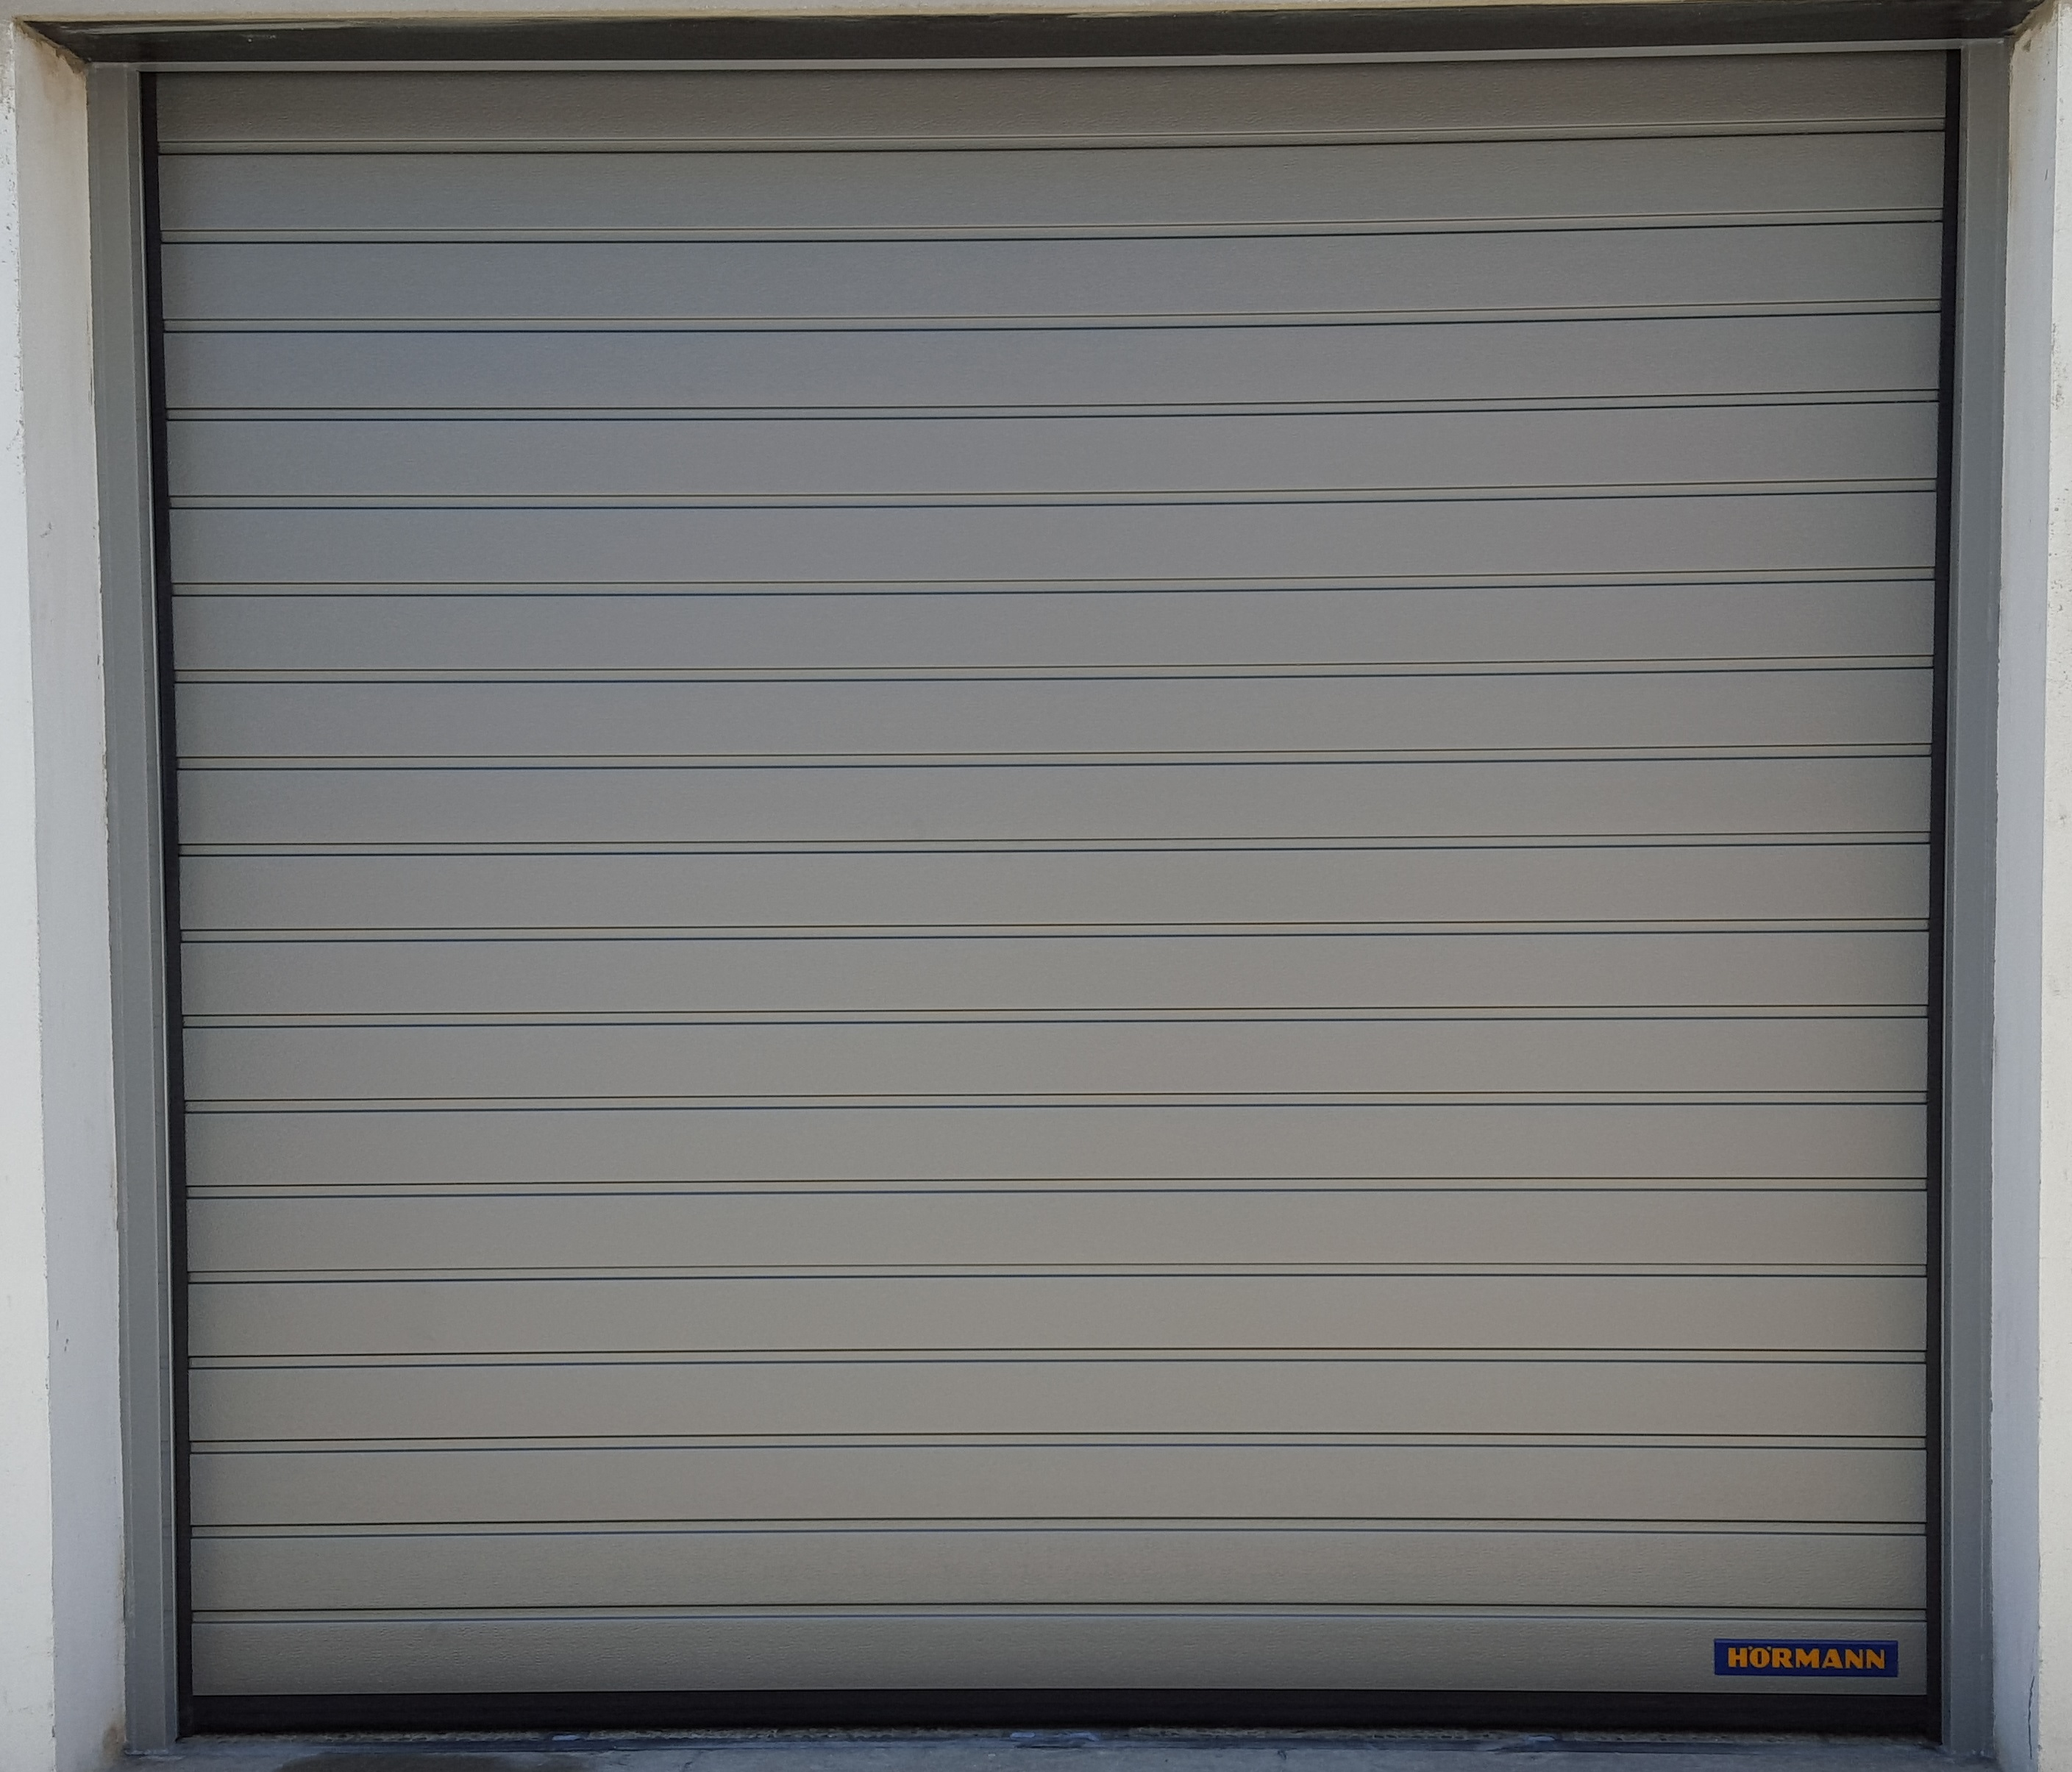 Saint denis porte hormann a m a ile de france for Porte de garage 5m hormann